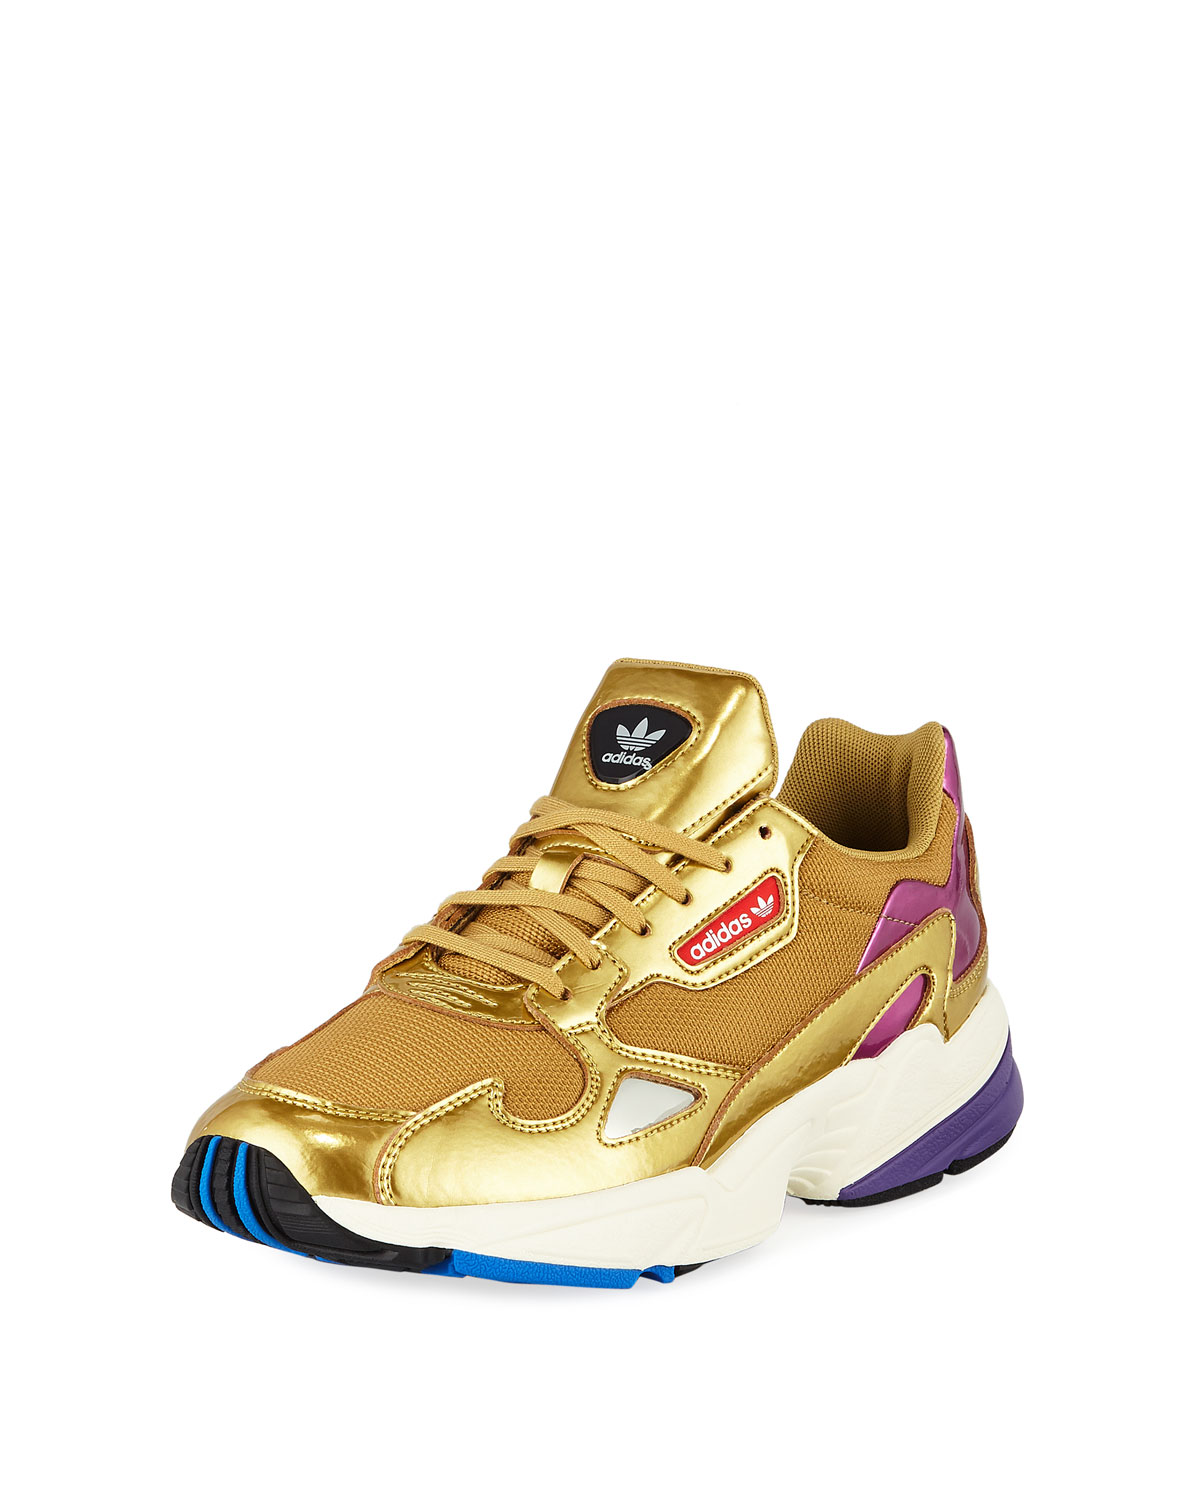 e7479fa02d Adidas Falcon Women s Metallic Sneakers